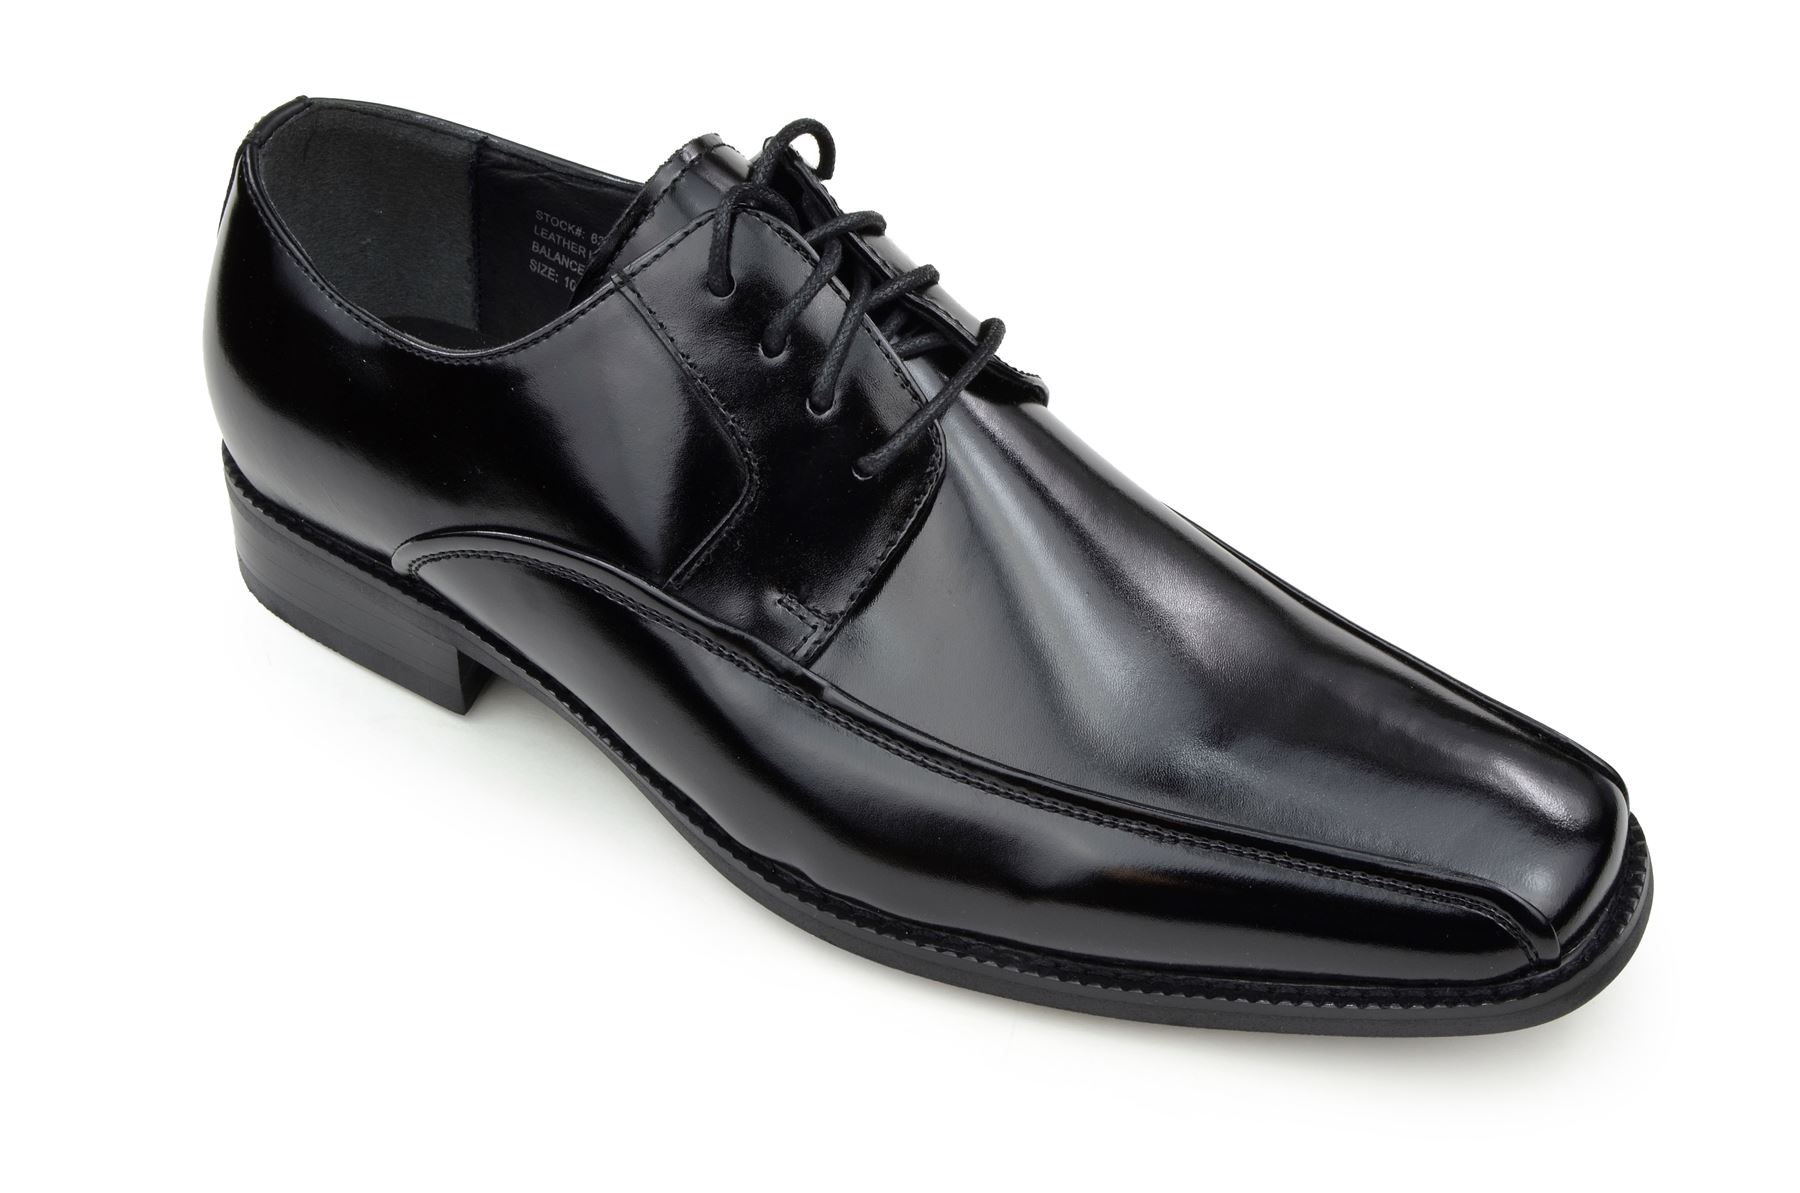 Moda Di Raza - Men's Oxford Lace Dress Shoes Sleek Trendy Light Shine - Black/10.5